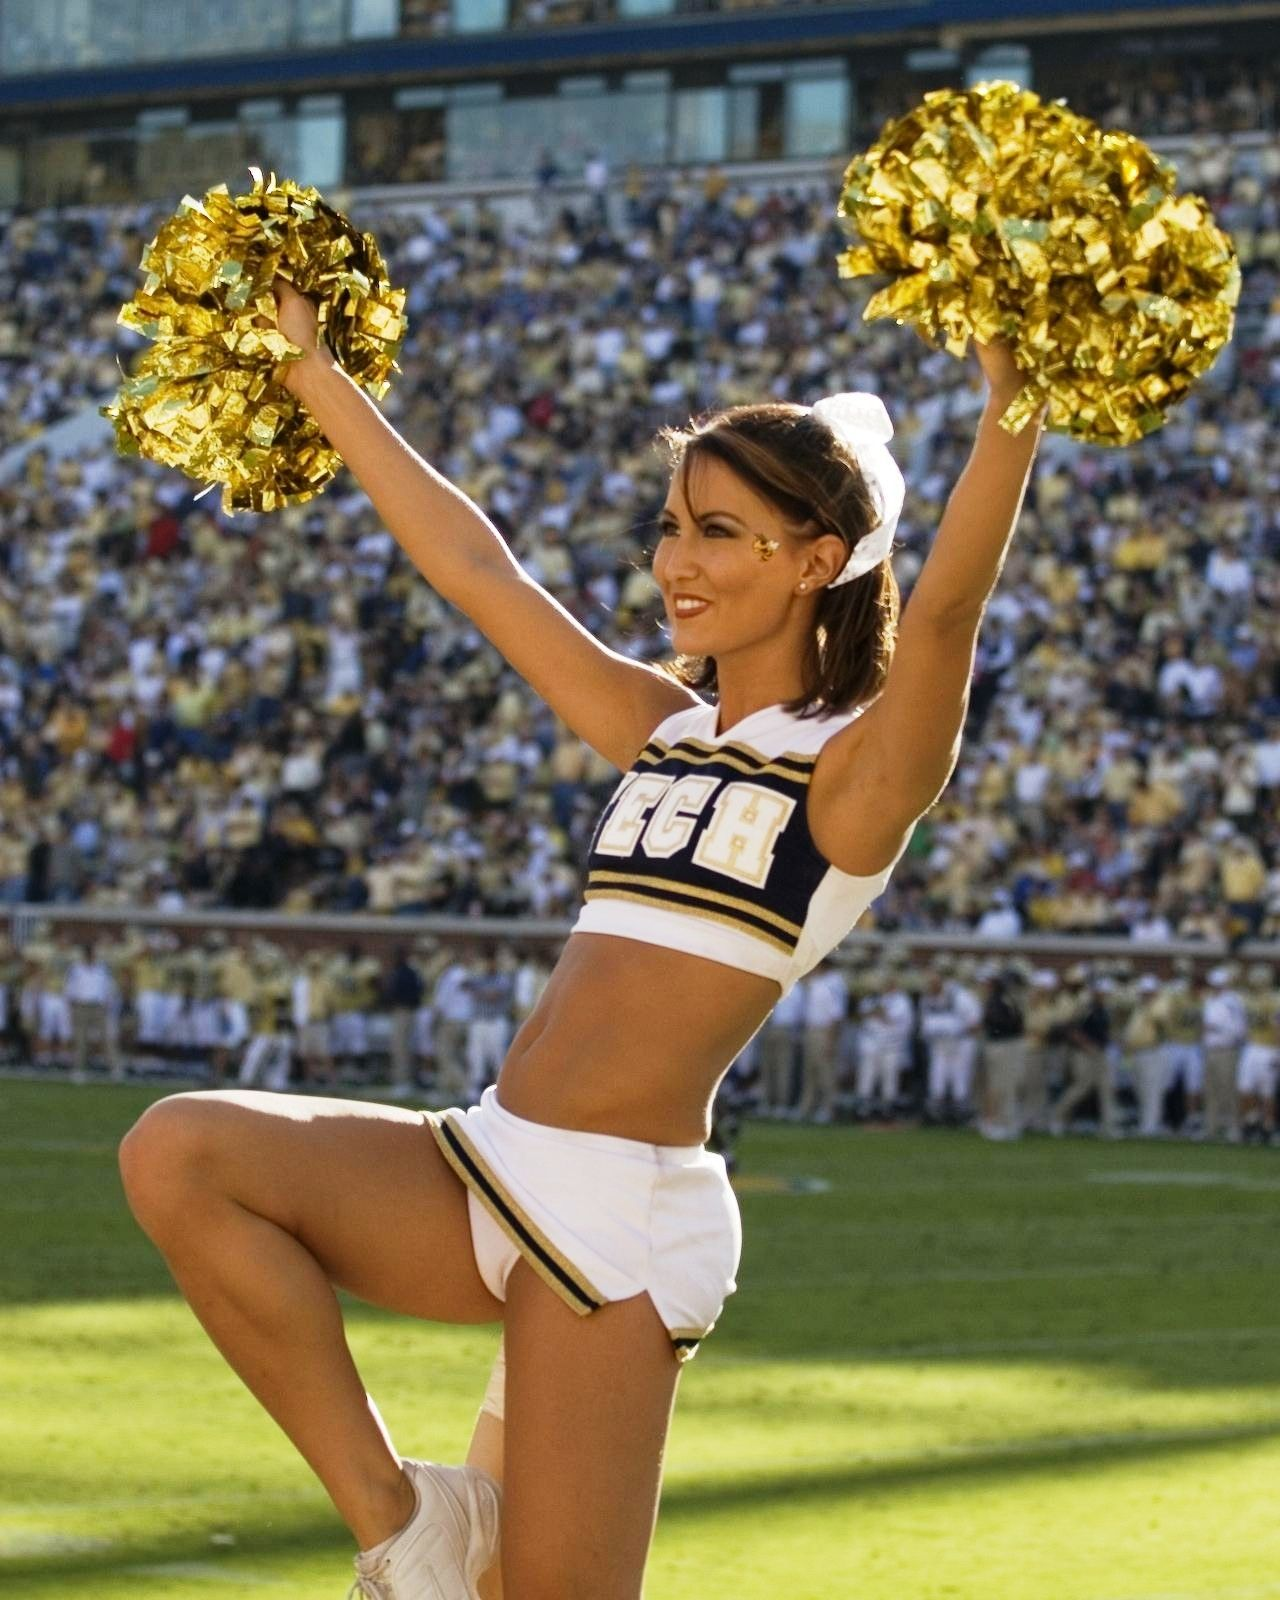 Sexy Cheerleaders And Cheerleader Porn Photos